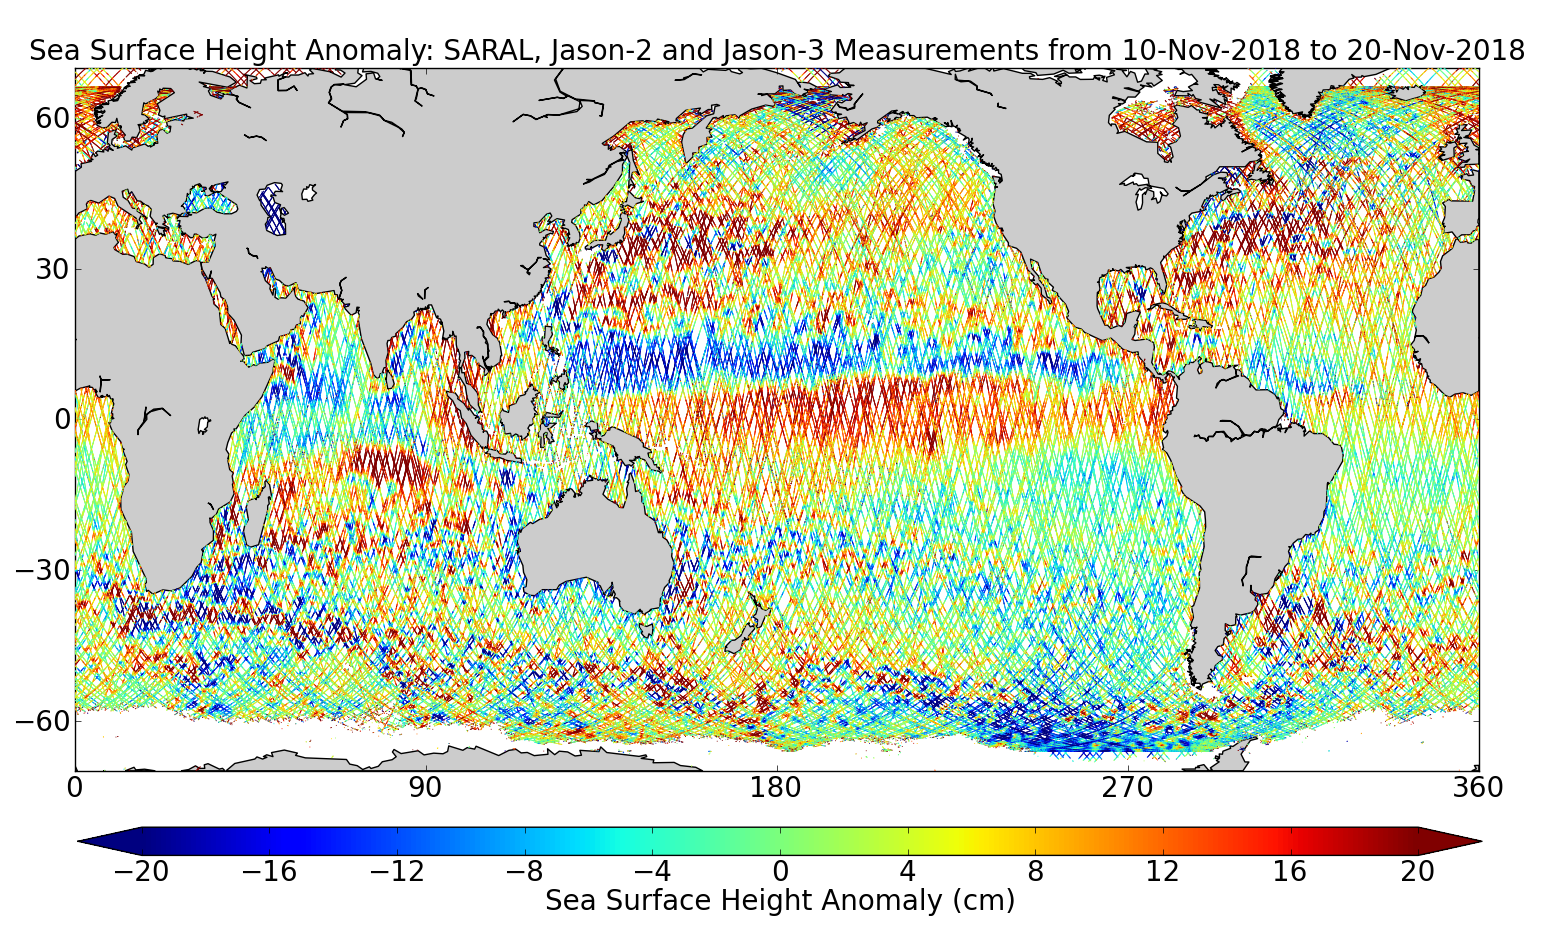 Sea Surface Height Anomaly: SARAL, Jason-2 and Jason-3 Measurements from 10-Nov-2018 to 20-Nov-2018